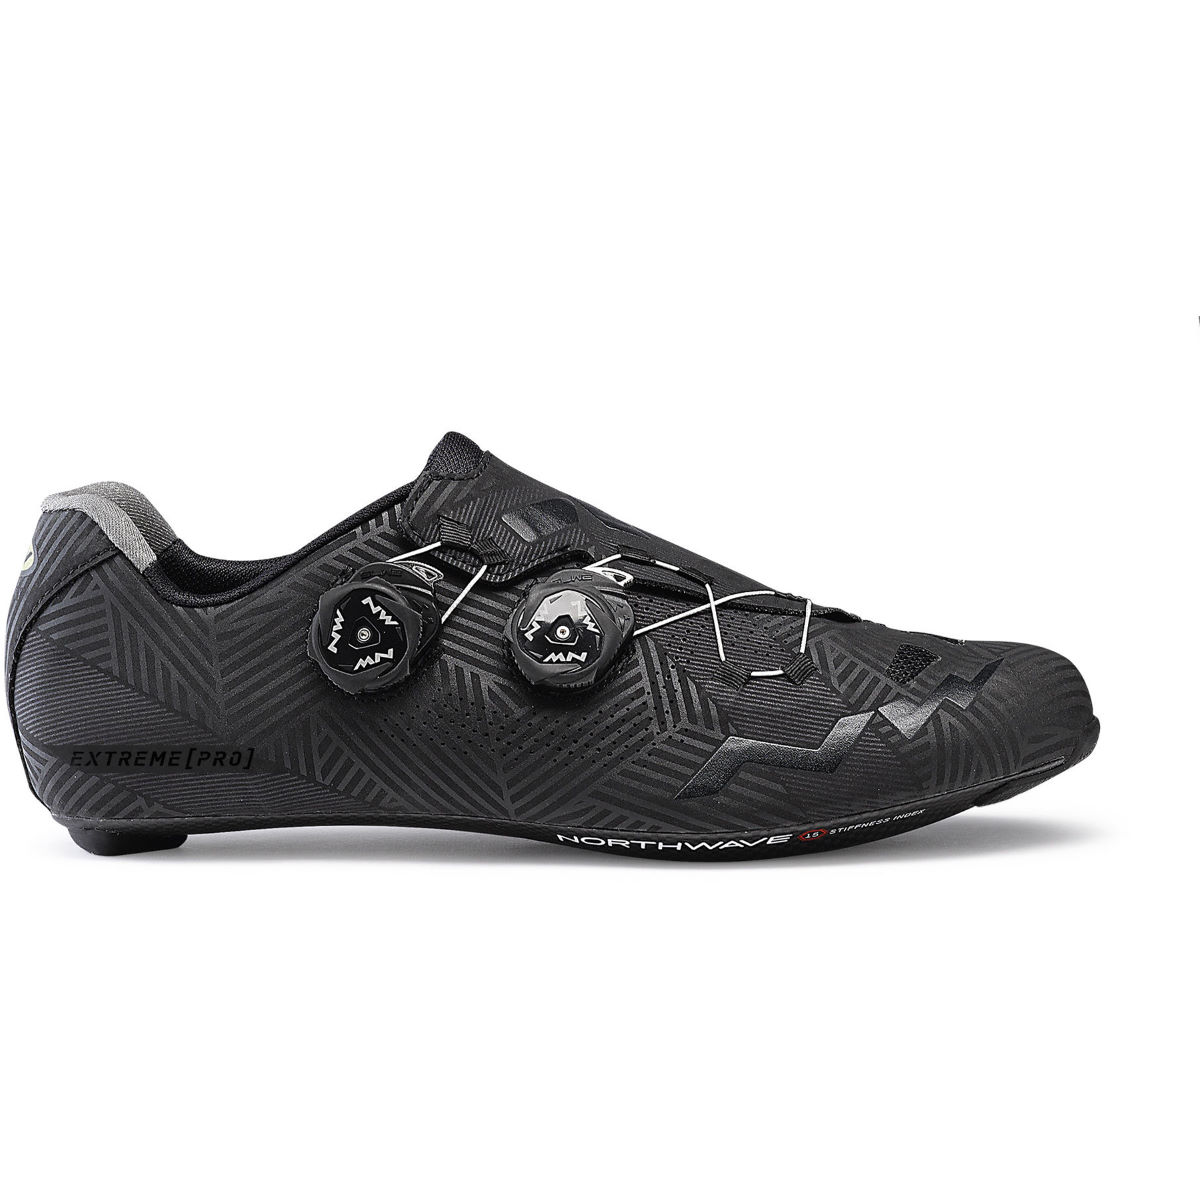 Northwave Northwave Extreme Pro Road Shoes   Cycling Shoes